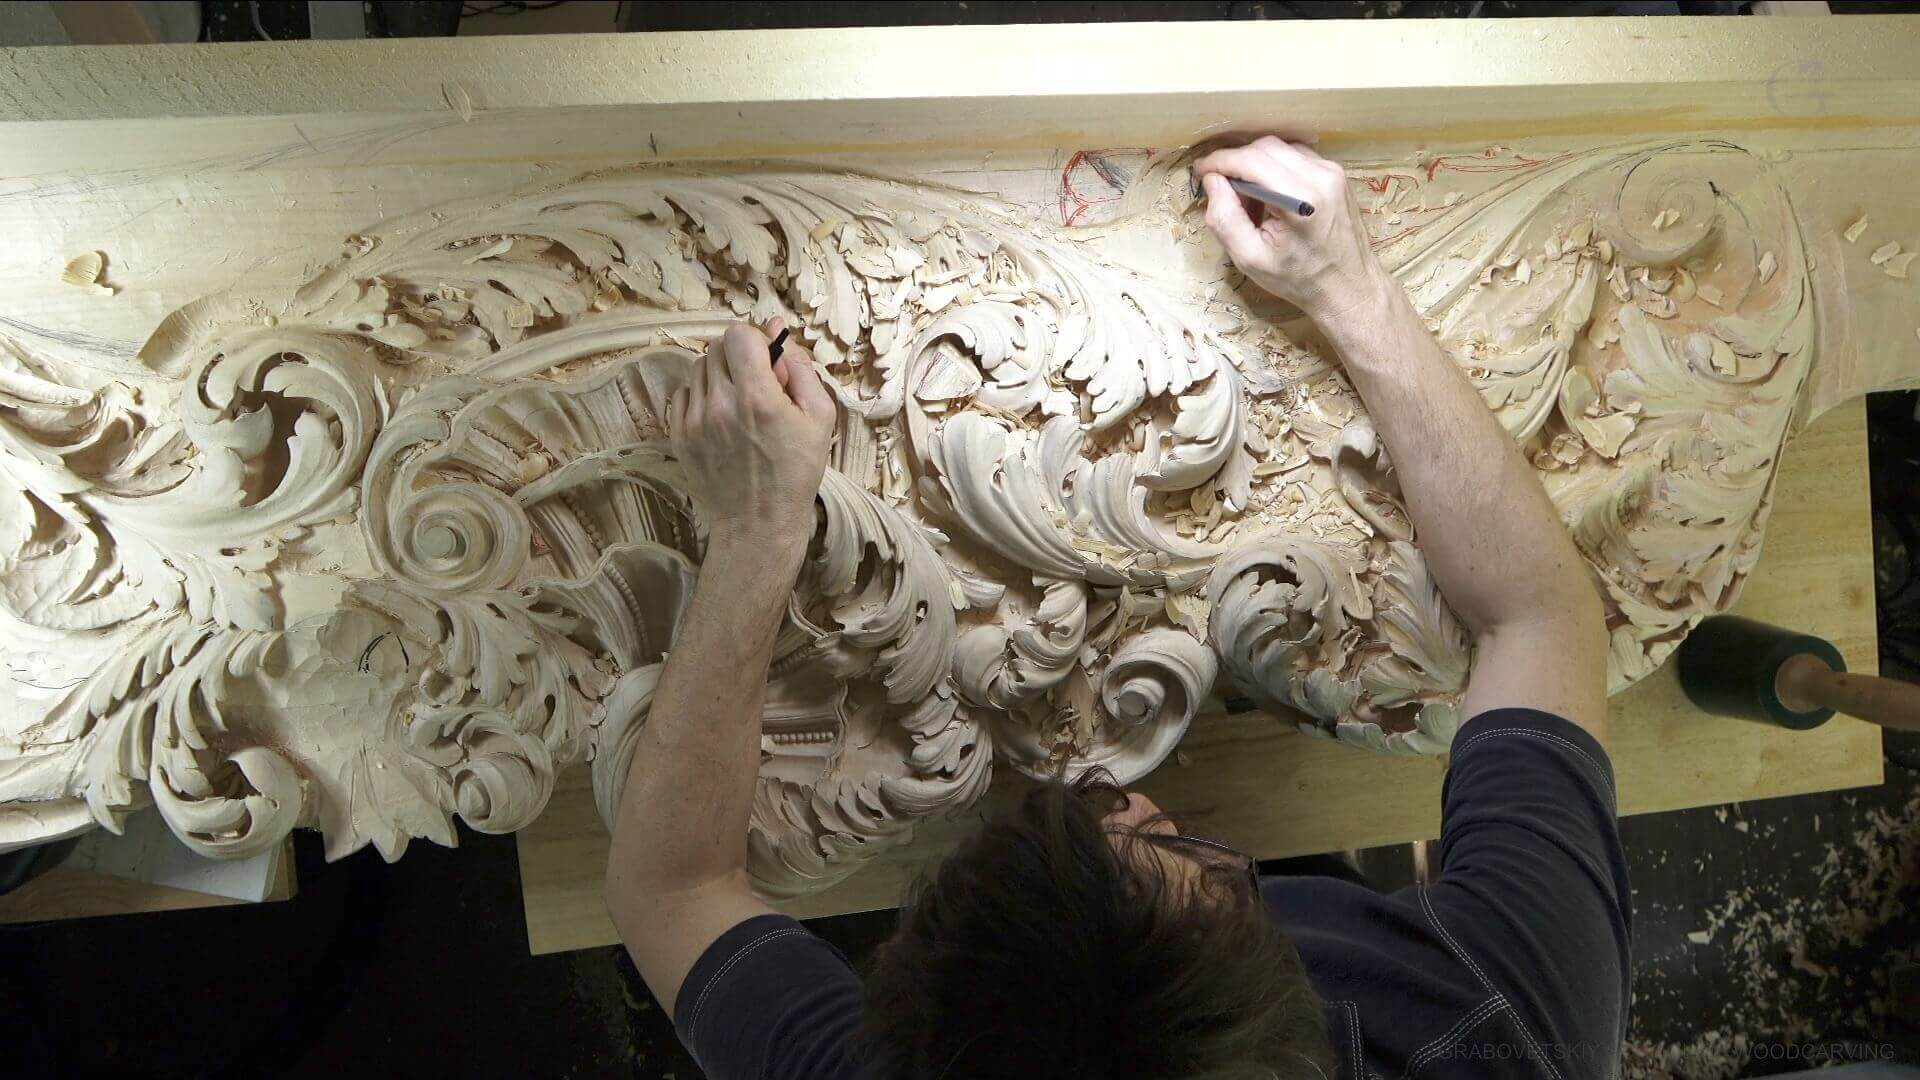 Wood Carving School online- Carving Venice Room Woodcarving course - Authentic Rococo 15th century design - Woodcarving Course online https://schoolofwoodcarving.com/ @woodcarvergrabovetskiy #todaysmaker #craft #skills #makersgonnamake #knowledge #carving #woodworker #woodwork #wooddesign #woodfurniture #interiordesign #carvingwood #woodworking #woodlovers #carpenter #dowoodworking #diy #finewoodworking #woodcraft #artisan #woodcarving #woodart #finewoodworking #handcrafted #idea #woodcarver #woodcarvers #woodcarvingart Learn Wood Carving in Rococo style 15th 16th-century Design. Woodcarving School online. School of Woodworking online. Afrikaans: Leer houtsneewerk in Rococo-styl uit die 16de eeu-ontwerp. Houtsneeskool aanlyn. Skool vir Houtbewerking aanlyn. Arabic: تعلم نحت الخشب بأسلوب الروكوكو تصميم القرن الخامس عشر. مدرسة نحت الخشب على الانترنت. مدرسة النجارة على الانترنت. Azerbaijani: Rokoko üslubunda taxta oyma məlumatlarını öyrənin 15-ci 16-cı əsr Dizayn. Woodcarving School online. İnternetdə ağac emalı məktəbi. Belarusian: Вывучыце разьбу па дрэве ў стылі ракако Дызайн 15-га стагоддзя 16-га стагоддзя. Разьба па дрэве ў Інтэрнэце. Школа дрэваапрацоўкі ў Інтэрнэце. Bulgarian: Научете дърворезбата в стил рококо 15-ти век от 16-ти век. Училище за дърворезба онлайн. Училище по дървообработка онлайн. Bengali: রোকো স্টাইল 15 তম 16 শতকের ডিজাইনে কাঠের খোদাই শিখুন। উডকারভিং স্কুল অনলাইন। অনলাইনে উড ওয়ার্কিং স্কুল। Bosnian: Naučite rezbarenje drveta u stilu rokokoa iz 15. veka. Škola rezbarenja drveta na mreži. Škola obrade drveta online. Catalan: Coneix la talla de fusta en estil rococó disseny del segle XV. Escola de talla en línia Escuela de Fusteria en línia. Cebuano: Hibal-i ang Pagkulit sa kahoy sa istilo sa Rococo nga ika-15 nga Disenyo sa ika-16 nga siglo. Woodcarving School online. School sa Pagtrabaho sa kahoy online. Czech: Naučte se řezbářství v rokokovém designu 15. 16. století. Dřevařská škola online. Škola zpracování dřeva online. Welsh: Dysgu Cerfio Pren mewn arddull Rococo Dylunio 15fed 16eg ganrif. Ysgol Cerfio Pren ar-lein. Ysgol Gwaith Coed ar-lein. Danish: Lær træsnidering i Rococo-stil fra 1500-tallet design. Træskarvskole online. Skolen for træbearbejdning online. German: Lernen Sie Holzschnitzerei im Rokoko-Stil aus dem 15. 16. Jahrhundert. Holzschnitzschule online. Schule für Holzbearbeitung online. Greek: Μάθετε ξυλογλυπτική σε στυλ ροκοκό 15ου 16ου αιώνα Design. Ξυλογλυπτική Σχολή σε απευθείας σύνδεση. Σχολή Ξυλουργικής Online. English: Learn Wood Carving in Rococo style 15th 16th-century Design. Woodcarving School online. School of Woodworking online. Esperanto: Learn Wood Carving in Rococo style 15th 16th-century Design. Woodcarving School online. School of Woodworking online. Spanish: Aprenda tallado en madera en estilo rococó Diseño del siglo XV del siglo XVI. Escuela de tallado en madera en línea. Escuela de carpintería en línea. Estonian: Õppige rokokoo stiilis puunikerdamist 15. 16. sajandi disain. Puunikerduskool Internetis. Puidutöötlemise kool veebis. Basque: Ikasi 16ko mendeko Diseinuaren egur tailako rokoko estiloan. Eskultura eskola online. Zurgintza Eskola online. Persian: حک کردن چوب به سبک روکوکو به سبک طراحی قرن پانزدهم میلادی را بیاموزید. مدرسه نجاری آنلاین. دانشکده نجاری آنلاین. Finnish: Opi puunleikkaus rokokoo-tyyliin 14. vuosisadan 1500-luvun muotoilu. Puunleikkauskoulu verkossa. Puuntyöstökoulu verkossa. French: Apprenez la sculpture sur bois dans un style rococo du 15e au 16e siècle École de sculpture sur bois en ligne. École de menuiserie en ligne. Irish: Foghlaim Snoíodóireacht Adhmaid i nDearadh an 15ú haois sa stíl rocócó. Scoil Snoíodóireachta Adhmaid ar líne. Scoil na Adhmadóireachta ar líne. Galician: Coñece a talla de madeira en estilo rococó o XV. Escola de madeira en liña. Escola de carpintería en liña. Gujarati: રોકોકો શૈલી 15 મી 16 મી સદીની ડિઝાઇનમાં વુડ કોતરકામ શીખો. વૂડકારવીંગ શાળા ઓનલાઇન. Woodનલાઇન વુડવર્કિંગ શાળા. Hausa: Koyi Sarkar da katako a cikin salon Rococo Tsarin 15th na 16th. Makaranta ta katako akan layi. School of Woodworking kan layi. Hindi: रोकोको शैली में जानें लकड़ी की नक्काशी 15 वीं 16 वीं शताब्दी की डिजाइन। वुडकार्विंग स्कूल ऑनलाइन। स्कूल ऑफ वुडवर्किंग ऑनलाइन। Hmong: Learn Wood Carving in Rococo style 15th 16th-century Design. Woodcarving School online. School of Woodworking online. Croatian: Naučite rezbarenje drva u stilu rokokoa iz dizajna 15. stoljeća. Škola rezbarenja drveta na mreži. Škola obrade drva na mreži. Haitian Creole: Aprann Bwa découper nan style rokoko 15th 16th century Design. Woodcarving School sou entènèt. Lekòl Woodworking sou entènèt. Hungarian: Ismerje meg a fafaragást rokokó stílusban. A 15. és 16. századi formatervezés. Fafaragó iskola online. Famegmunkáló Iskola online. Armenian: Սովորեք փայտի փորագրություն Ռոկոկոյի ոճով 15-րդ դարի դիզայնի մեջ: Փայտի փորագրության դպրոցը առցանց: Փայտամշակման դպրոց առցանց: Indonesian: Pelajari Ukiran Kayu dengan gaya Rococo 15th abad ke-16. Sekolah Ukiran Kayu online. Sekolah Woodworking online. Igbo: Mụta ịkwa osisi na ụdị Rococo eji ejiji na narị afọ nke iri na isii. Carlọ Akwụkwọ Woodcarving online. Oflọ akwụkwọ nke Woodworking online. Icelandic: Lærðu tréskurð í Rococo-stíl 15. 16. aldar hönnun. Tréskurðarskóli á netinu. Trésmíðaskóli á netinu. Italian: Scopri l'intaglio del legno in stile rococò del XV secolo. Scuola di intaglio del legno online. Scuola di falegnameria online. Hebrew: למד גילוף בעץ בסגנון רוקוקו בעיצוב המאה ה -16. בית הספר לגילוף בעץ ברשת. בית הספר לעבודות עץ מקוון. Japanese: 15世紀から16世紀のロココ様式の木彫りを学びます。木彫り学校オンライン。木工学校オンライン。 Javanese: Sinau Ngukir Kayu kanthi Desain Ringgit kaping 16 kanggo abad 16. Woodcarving School online. Sekolah Kayu Kayu online. Georgian: შეიტყვეთ ხის მოჩუქურთმება როკოკოს სტილში მე -16 საუკუნის მე -16 დიზაინში. Woodcarving სკოლა ხაზზე. ხე-ტყის ხის სკოლა ხაზზე. Kazakh: Рококо стилінде ағаш кесуді үйреніңіз 15-ші 16 ғасырдағы дизайн. Ағаш кесу мектебі онлайн. Интернеттегі ағаш өңдеу мектебі. Khmer: រៀនឆ្លាក់ឈើតាមរចនាបថរ៉ូឆកូទី ១៥ រចនាសតវត្សរ៍ទី ១៦ ។ សាលាឈើលើអ៊ីនធឺណិត។ សាលាធ្វើអំពីឈើតាមអ៊ិនធរណេត។ Kannada: ರೊಕೊಕೊ ಶೈಲಿಯಲ್ಲಿ 15 ನೇ 16 ನೇ ಶತಮಾನದ ವಿನ್ಯಾಸದಲ್ಲಿ ವುಡ್ ಕೆತ್ತನೆಯನ್ನು ಕಲಿಯಿರಿ. ವುಡ್‌ಕಾರ್ವಿಂಗ್ ಶಾಲೆ ಆನ್‌ಲೈನ್. ಸ್ಕೂಲ್ ಆಫ್ ವುಡ್ ವರ್ಕಿಂಗ್ ಆನ್ಲೈನ್. Korean: 로코코 스타일의 15 세기 16 세기 디자인의 나무 조각을 배우십시오. 목각 학교 온라인. 온라인 목공 학교. Latin: Learn Wood Carving in Rococo style 15th 16th-century Design. Woodcarving School online. School of Woodworking online. Lao: ຮຽນຮູ້ການແກະສະຫຼັກໄມ້ໃນແບບ Rococo ວັນທີ 15 ການອອກແບບສະຕະວັດທີ 16. ໂຮງຮຽນແກະສະຫຼັກໄມ້ online. ໂຮງຮຽນໄມ້ປ່ອງ online. Lithuanian: Sužinokite apie rokoko stiliaus medžio drožybą. XV – XVI amžiaus dizainas. Medžio drožybos mokykla internete. Medienos apdirbimo mokykla internete. Latvian: Apgūstiet kokgriezumu rokoko stilā 15. 16. gadsimta dizains. Kokapstrādes skola tiešsaistē. Kokapstrādes skola tiešsaistē. Malagasy: Ianaro ny sokitra hazo amin'ny fomba fanao amin'ny taonjato faha-16 tamin'ny taonjato faha-16. Woodcarving School an-tserasera. Sekoly amin'ny fanamboarana kitay an-tserasera. Maori: Akohia te whakairo rakau i roto i te ahua o Rococo te Rorohiko tekau ma wha 16. Woodcarving School ma te ipurangi. Te Kura o Nga mahi-a-ipurangi. Macedonian: Научете резба на дрво во дизајн на рококо во 15-тиот век од 16-от век. Училиште за резба преку Интернет. Школата за обработка на дрво преку Интернет. Malayalam: പതിനഞ്ചാം നൂറ്റാണ്ടിലെ രൂപകൽപ്പനയിൽ റോക്കോകോ ശൈലിയിൽ മരം കൊത്തുപണി പഠിക്കുക. വുഡ്‌കാർവിംഗ് സ്‌കൂൾ ഓൺ‌ലൈൻ. സ്കൂൾ ഓഫ് വുഡ് വർക്കിംഗ് ഓൺ‌ലൈൻ. Mongolian: 16-р зууны 15-р зууны Рококогийн хэв маягаар мод сийлбэр сур. Модон эдлэлийн сургууль онлайн. Модон эдлэлийн сургууль онлайн. Marathi: रोकोको शैली 15 व्या 16 व्या शतकातील डिझाइनमध्ये वुड कोरीविंग जाणून घ्या. वुडकारिव्ह स्कूल वुडवर्किंग स्कूल ऑनलाईन. Malay: Belajar Ukiran Kayu dalam gaya Rococo yang bergaya ke-15 Abad ke-16. Woodcarving School dalam talian. Sekolah Kerja Kayu dalam talian. Maltese: Tgħallem Tqaxxir tal-Injam fl-istil tar-rokokò fid-Disinn tas-16-il seklu. Skola tal-injam fuq l-injam. Iskola ta 'l-injam fuq l-internet. Myanmar (Burmese): ၁၅ ရာစု ၁၆ ရာစုဒီဇိုင်းတွင်ရိုကိုကိုစတိုင်သစ်သားထွင်းခြင်းလေ့လာခြင်း။ Woodcarving ကျောင်းအွန်လိုင်း။ အွန်လိုင်းသစ်သားကျောင်း။ Nepali: रोकोको शैली १ 15 औं १ century औं शताब्दीको डिजाइनमा काठ नक्काशी गर्ने सिक्नुहोस्। वुडकर्भिंग स्कूल अनलाइन। वुडवर्किंग अनलाइन स्कूल। Dutch: Leer houtsnijden in Rococo-stijl 15e 16e-eeuws ontwerp. Houtsnijschool online. School voor houtbewerking online. Norwegian: Lær treskjæring i Rococo-stil fra 1500-tallet design. Treskjæringsskole online. School of Woodworking online. Chichewa: Phunzirani Kutema Kwa Wood mu Rococo kalembedwe ka 15th 16th Design. Sukulu Yophunzitsa Mtengo pa intaneti. Sukulu ya Woodworking pa intaneti. Punjabi: 15 ਵੀਂ 16 ਵੀਂ ਸਦੀ ਦੇ ਡਿਜ਼ਾਇਨ ਵਿਚ ਰੋਕੋਕੋ ਸ਼ੈਲੀ ਵਿਚ ਲੱਕੜ ਦੀ ਕਟਾਈ ਸਿੱਖੋ. ਵੁੱਡਕਰਾਵਿੰਗ ਸਕੂਲ .ਨਲਾਈਨ. ਵੁੱਡਵਰਕਿੰਗ ਦਾ ਸਕੂਲ .ਨਲਾਈਨ. Polish: Naucz się rzeźbienia w drewnie w stylu rokoko z XVI wieku. Szkoła rzeźby w drewnie online. School of Woodworking online. Portuguese: Aprenda escultura em madeira em estilo rococó, design do século XVI. Woodcarving School on-line. Escola de Carpintaria online. Romanian: Aflați cioplirea lemnului în stil rocococ din secolul al XV-lea. Școala de sculptură în lemn online. Scoala de prelucrare a lemnului online. Russian: Изучите резьбу по дереву в стиле рококо в стиле XVI XVI века. Школа резьбы по дереву онлайн. Школа деревообработки онлайн. Sinhala: 15 වන 16 වන සියවසේ නිර්මාණය රොකෝකෝ විලාසිතාවෙන් ලී කැටයම් ඉගෙන ගන්න. වුඩ්කාර්විං පාසල මාර්ගගතව. ලී වැඩ පාසල සමඟ අමුත්තන්. Slovak: Naučte sa rezbárske práce v rokokovom štýle 15. Dizajn 16. storočia. Škola rezbárstva online. Škola spracovania dreva online. Slovenian: Naučite se rezbarjenja lesa v rokoko oblikovanju iz 15. stoletja. Šola rezbarjenja na spletu. Šola za lesarstvo na spletu. Somali: Baro Qaadashada alwaaxa ee Rococo qaabka 15naad Qarnigii 16aad. Iskuulka internetka qoryo qoryo leh. Iskuulka Woodworking onlaynka ah. Albanian: Mësoni Gdhendjen e drurit në stilin Rokoko, Dizajnin e shekullit të XVI. Shkolla e gdhendjes në internet Shkolla e Njoftimit në internet. Serbian: Научите резбарење дрвета у стилу рококоа из 15. века из 16. века. Школа резбарења дрвета на мрежи. Школа обраде дрвета онлине. Sesotho: Ithute Wood Carving ka Rococo setaele sa 15th sa 16th Design. Sekolo sa Woodlinving inthaneteng. Sekolo sa Woodworking inthaneteng. Sundanese: Diajar Ukiran Kayu dina gaya Rococo 15 Desain ka-16. Woodcarving Sakola online. Sakola Woodworking online. Swedish: Lär dig träsnideri i Rococo-stil från 1500-talets design. Träsnittskola online. Skolan för träbearbetning online. Swahili: Jifunze kuchonga kuni kwa mtindo wa Rococo 15 wa karne ya 16. Shule ya Kutengeneza miti mkondoni. Shule ya Woodworking mkondoni. Tamil: ரோகோகோ பாணியில் 15 வது 16 ஆம் நூற்றாண்டின் வடிவமைப்பில் மர செதுக்கலைக் கற்றுக்கொள்ளுங்கள். வூட்கார்விங் பள்ளி ஆன்லைனில். வூட்வொர்க்கிங் பள்ளி ஆன்லைன். Telugu: రోకోకో శైలిలో 15 వ 16 వ శతాబ్దపు డిజైన్‌లో వుడ్ కార్వింగ్ నేర్చుకోండి. వుడ్‌కార్వింగ్ స్కూల్ ఆన్‌లైన్. స్కూల్ ఆఫ్ వుడ్ వర్కింగ్ ఆన్‌లైన్. Tajik: Кашидани чӯбро дар услуби Рококо ёд гиред 15. Дизайни асри 16 16. Мактаби чӯбкорӣ онлайн. Мактаби чубу тахта онлайн. Thai: เรียนรู้การแกะสลักไม้ในสไตล์โรโคโคที่ 15 ในศตวรรษที่ 16 โรงเรียนสอนแกะสลักไม้ออนไลน์ School of Woodworking ออนไลน์ Filipino: Alamin ang Pag-ukit ng Wood sa istilo ng Rococo ika-15 Disenyo ng ika-16 siglo. Woodcarving School online. Paaralan ng Woodworking online. Turkish: Rokoko tarzı 15. yüzyıl tasarımında Ahşap Oymacılığı öğrenin. Oymacılığı Okulu çevrimiçi. Ağaç İşleme Okulu çevrimiçi. Ukrainian: Вивчіть різьблення по дереву в стилі рококо 15-го століття 16 століття. Різьба по дереву онлайн. Школа деревообробки онлайн. Urdu: 15 ویں 16 ویں صدی کے ڈیزائن میں روکوکو طرز میں لکڑی کی نقش نگاری سیکھیں۔ ووڈ کارونگ اسکول آن لائن. ووڈ ورکنگ کا اسکول آن لائن. Uzbek: Rokoko uslubida yog'och o'ymakorligini o'rganing. Yog'och o'ymakorligi maktabi onlayn. Yog'ochni qayta ishlash maktabi onlayn. Vietnamese: Tìm hiểu Khắc gỗ theo phong cách Rococo Thiết kế thế kỷ 16. Trường khắc gỗ trực tuyến. Trường học chế biến gỗ trực tuyến. Yiddish: לערן האָלץ קאַרווינג אין ראָקאָקאָ סטיל פון די 16 יאָרהונדערט פּלאַן. וואָאָדקאַרווינג שולע אָנליין. שולע פֿאַר וואָאָדוואָרקינג אָנליין. Yoruba: Kọ ẹkọ Ifi igi ni ara Rococo ara 15th-orundun 16th. Ile-iwe Woodcarving lori ayelujara. Ile-iwe ti Woodworking online. Chinese: 学习洛可可风格的16世纪木雕设计。在线木雕学校。木工学校在线。 Chinese (Simplified): 学习洛可可风格的16世纪木雕设计。在线木雕学校。木工学校在线。 Chinese (Traditional): 學習洛可可風格的16世紀木雕設計。在線木雕學校。木工學校在線。 Zulu: Funda Ukhuni Kwezinkuni ngesitayela seRococo 15th yekhulu le-16 leminyaka. Isikole Sokubopha Izinkuni online. Isikole se Woodworking online.